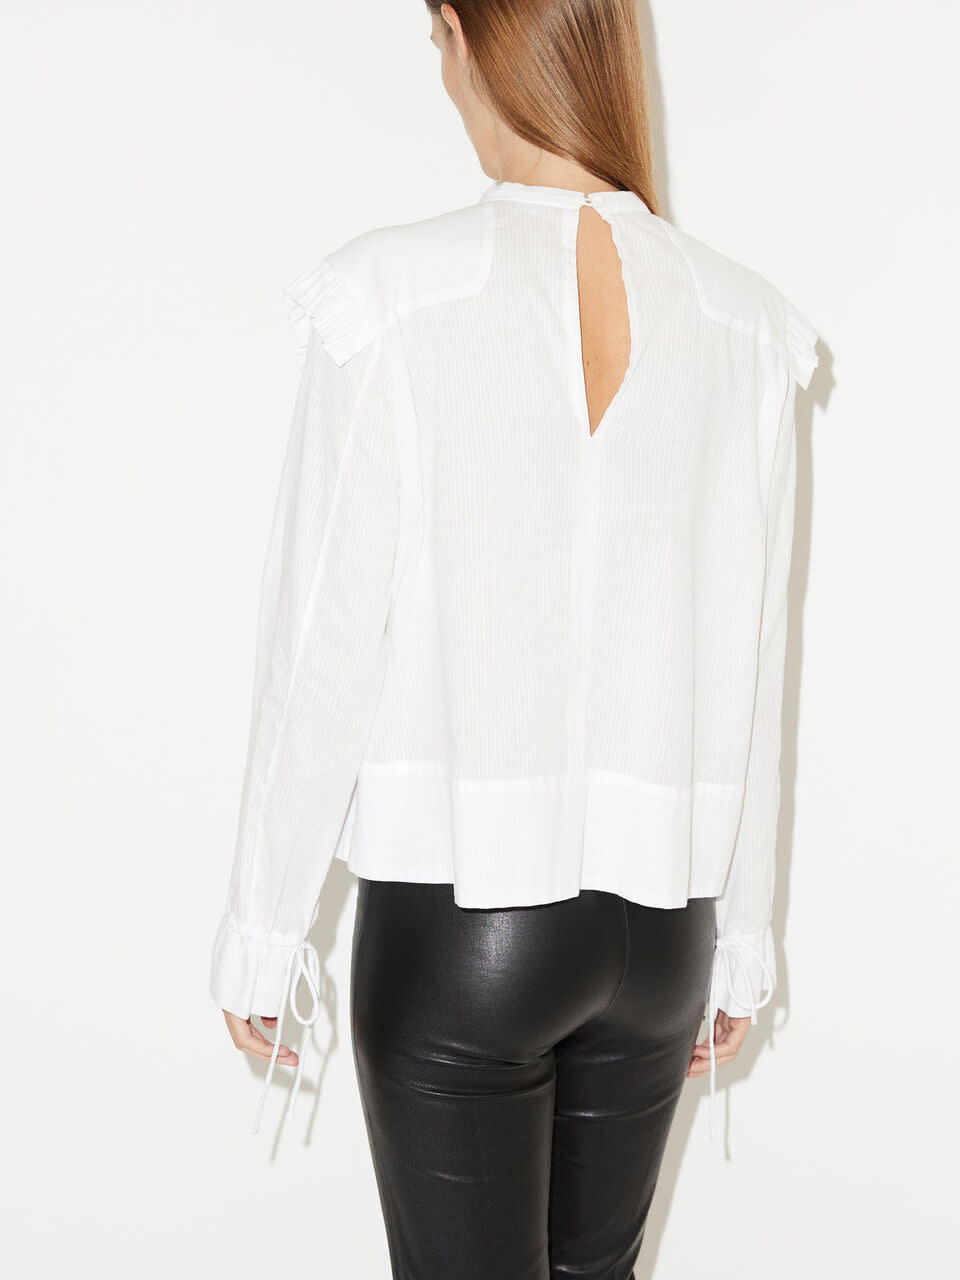 Salinger blouse by malene birger-4